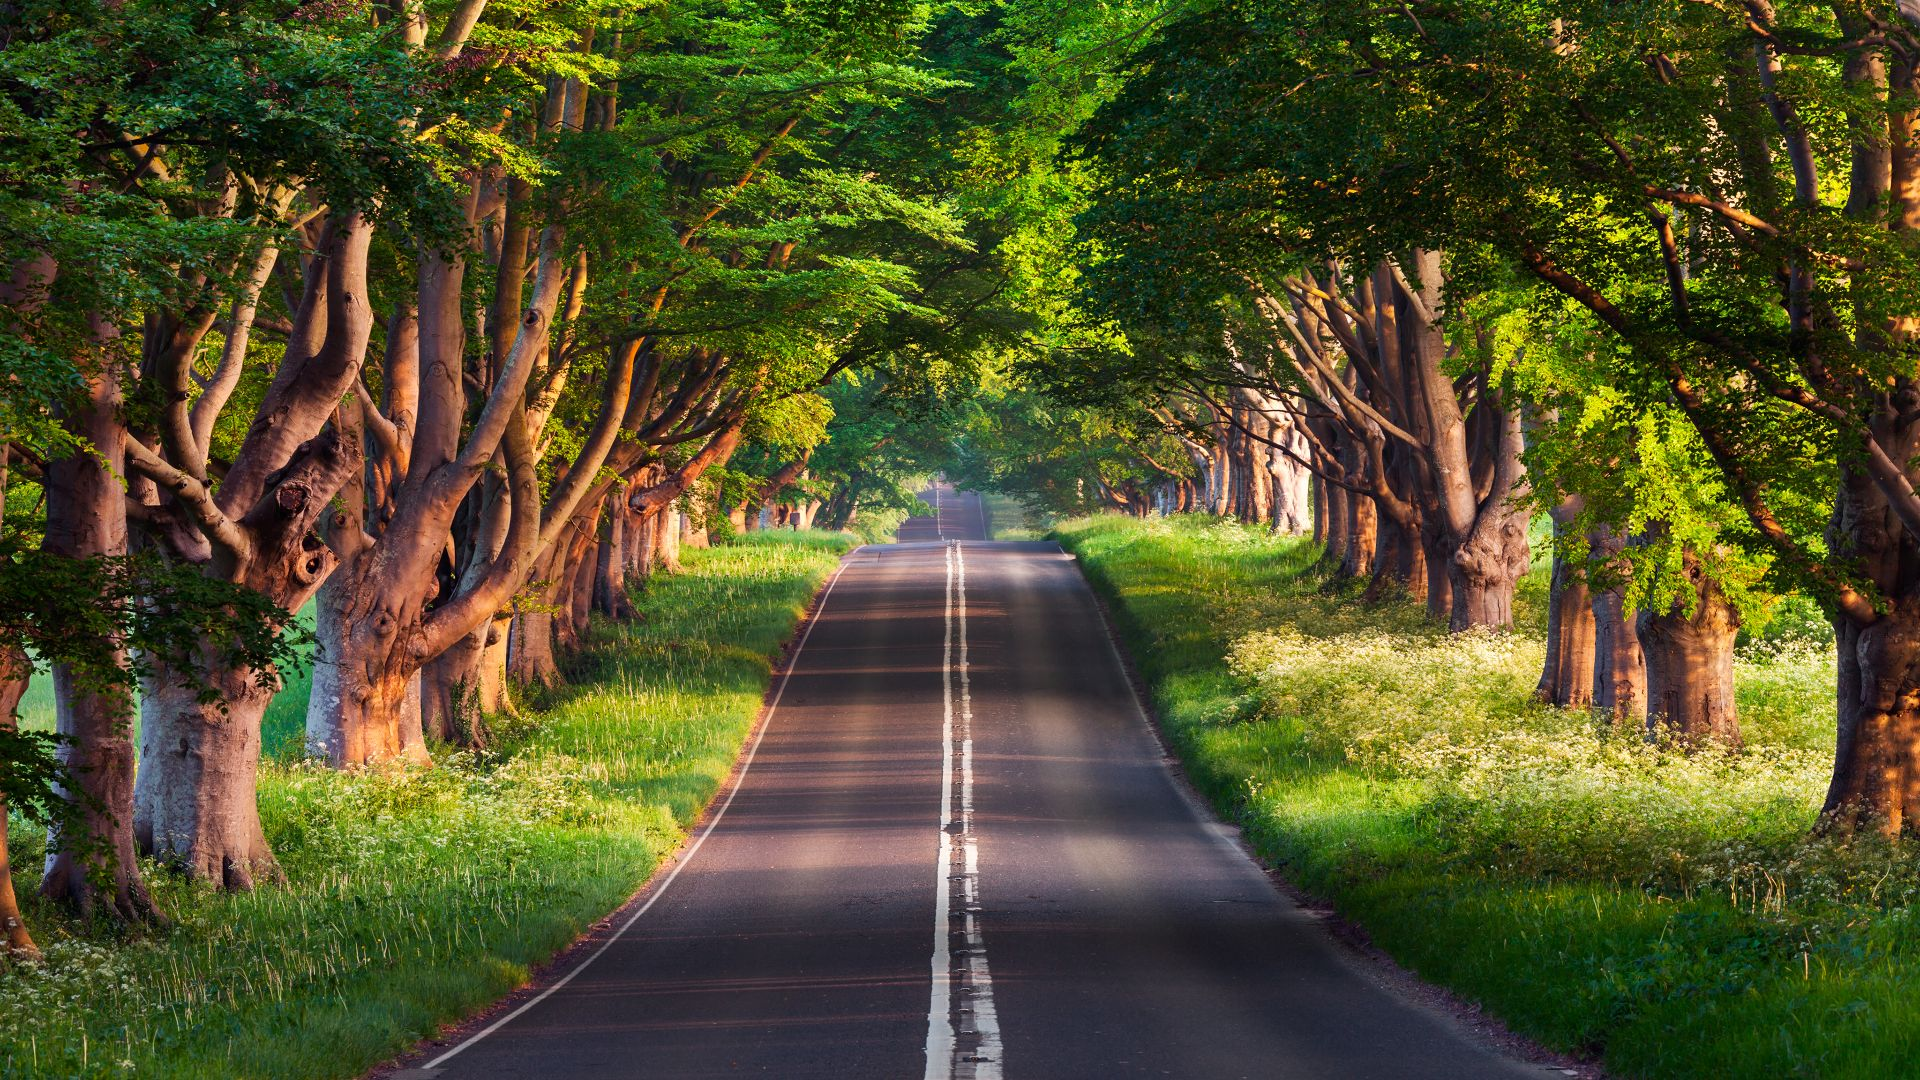 wallpaper road, trees, summer, 4k, nature #17125